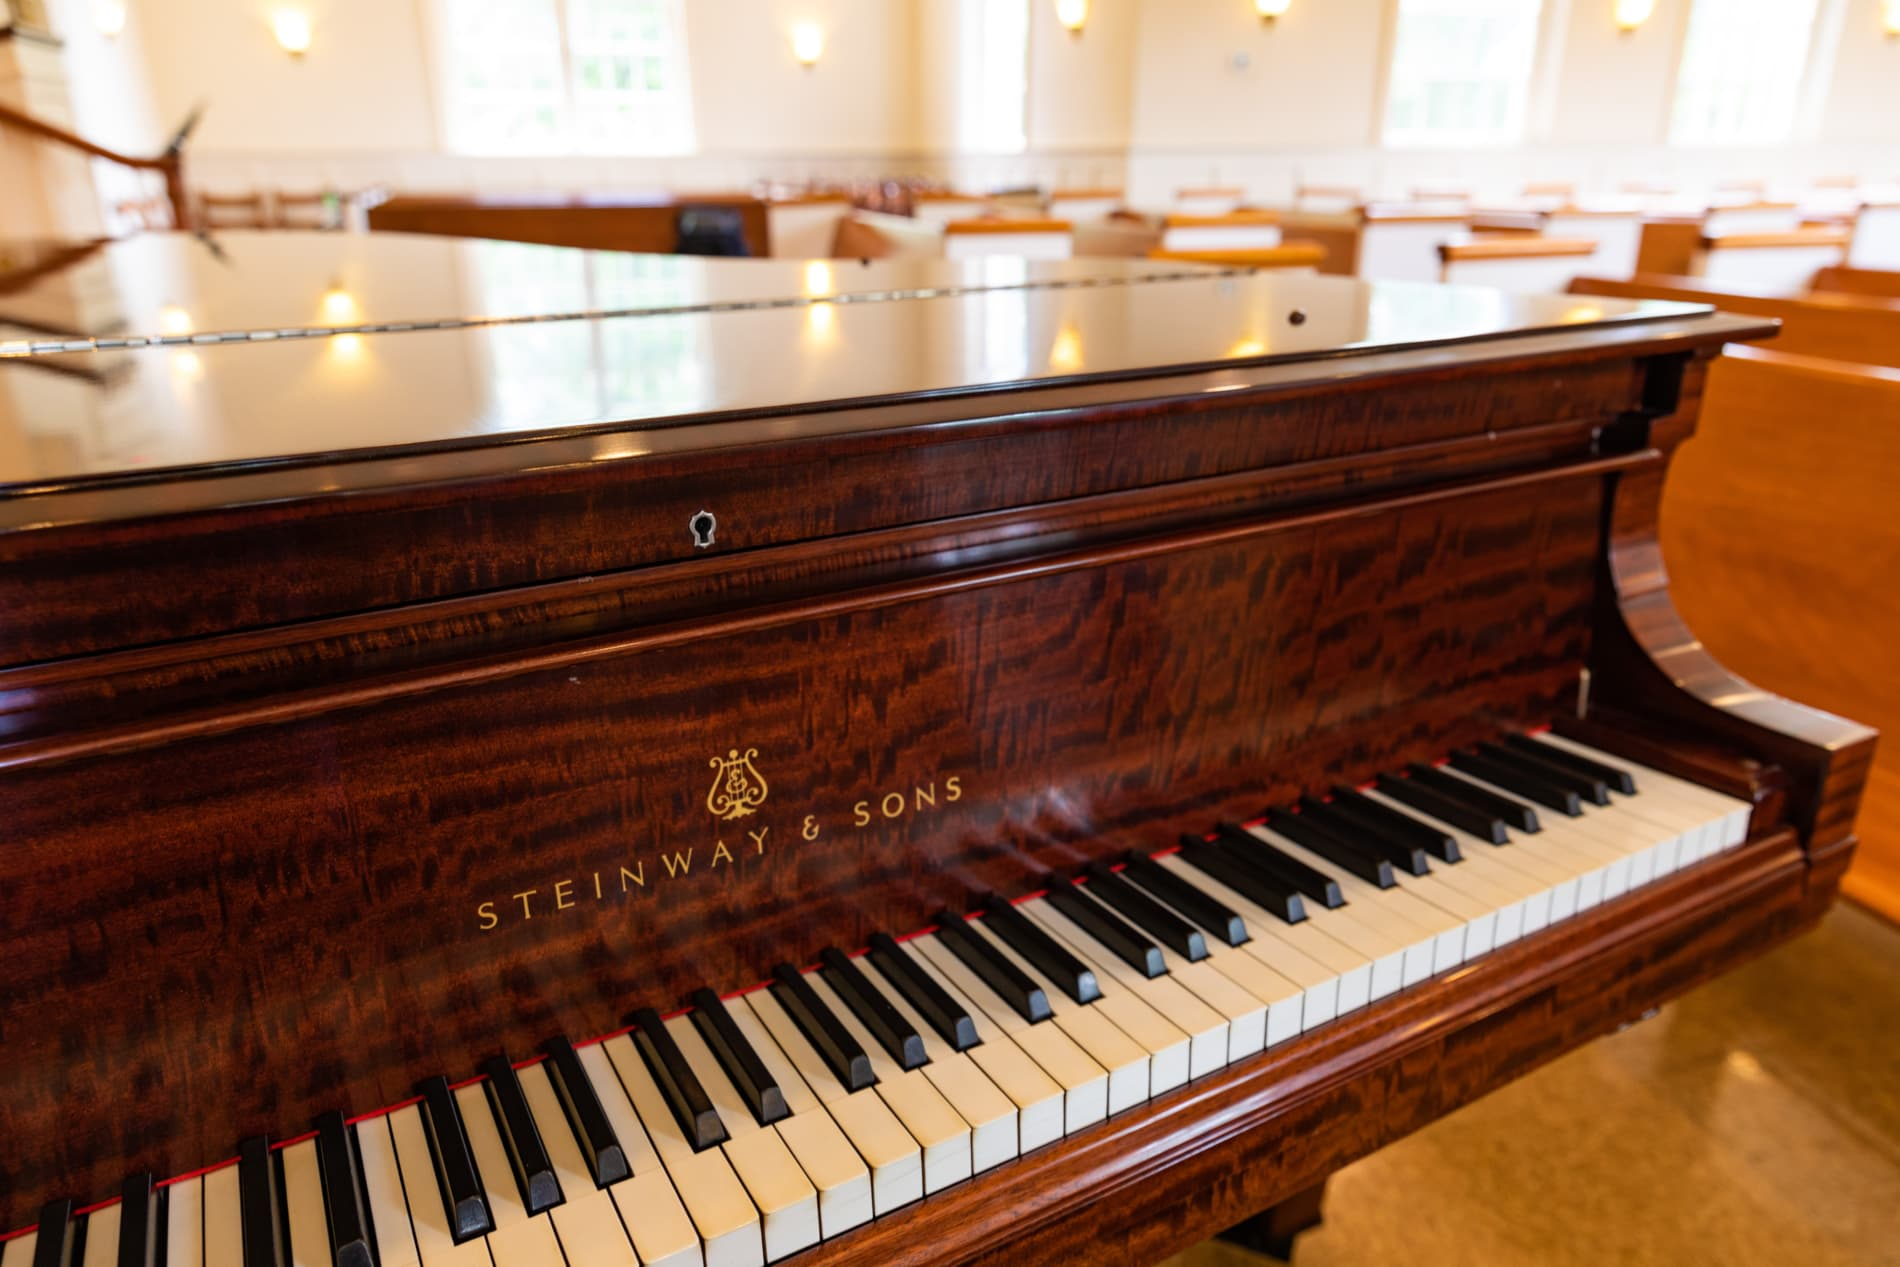 The keys and top of a Steinway piano against a background of church pews.